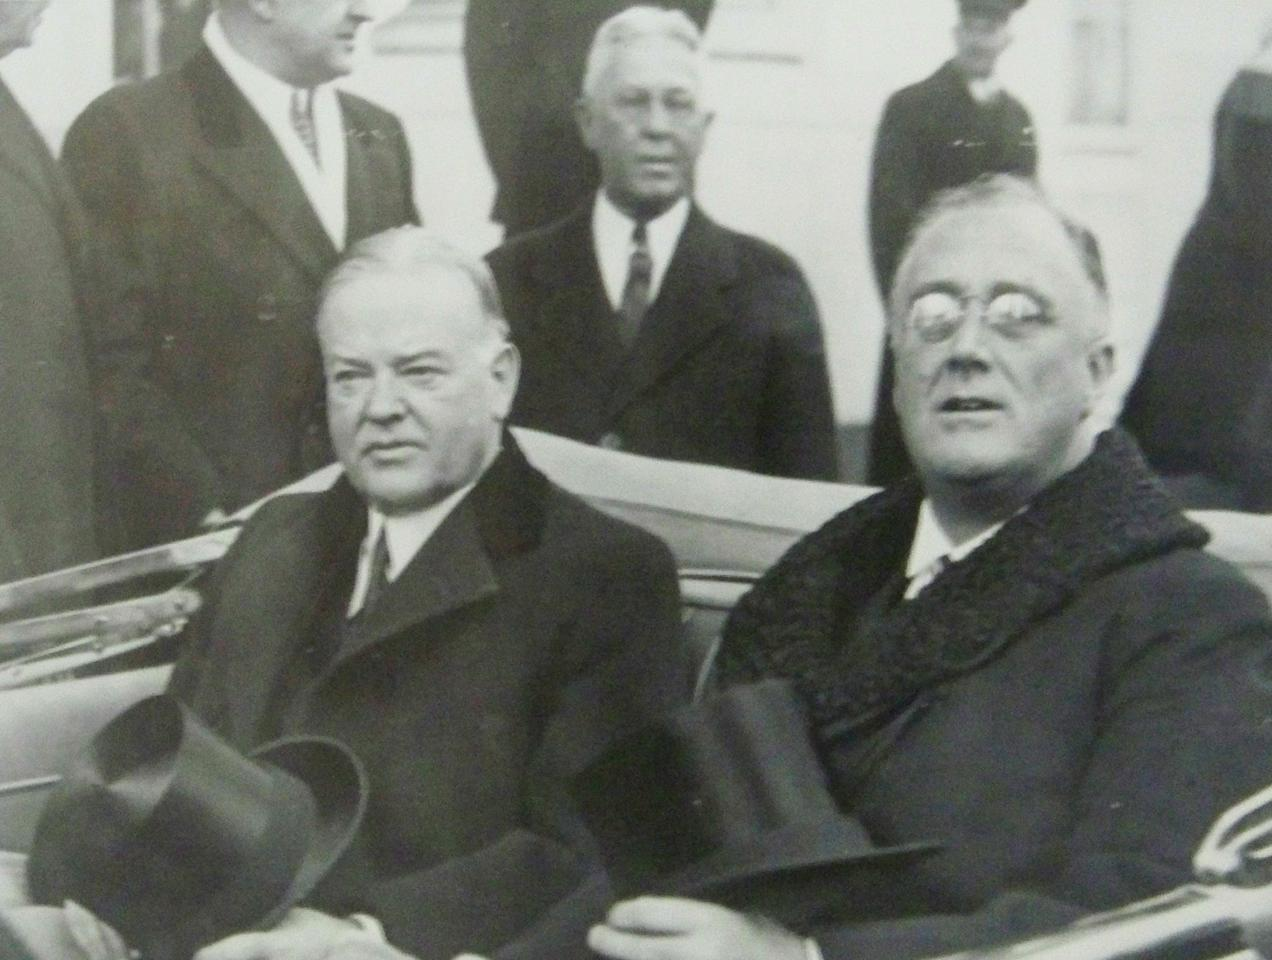 "This March 4, 1933 photo provided by the New-York Historical Society courtesy  of the Franklin D. Roosevelt Presidential Library and Museum, Hyde Park, New York shows President-elect Franklin D. Roosevelt going to his Inauguration with the outgoing President Herbert Hoover as they share a tense ride to the Capitol in Washington, D.C. The picture is part of a new exhibit at the New-York Historical Society, titled ""A New President Takes Command: FDR's First Hundred Days."" (AP Photo/Franklin D. Roosevelt Presidential Library and Museum)**NO SALES**"